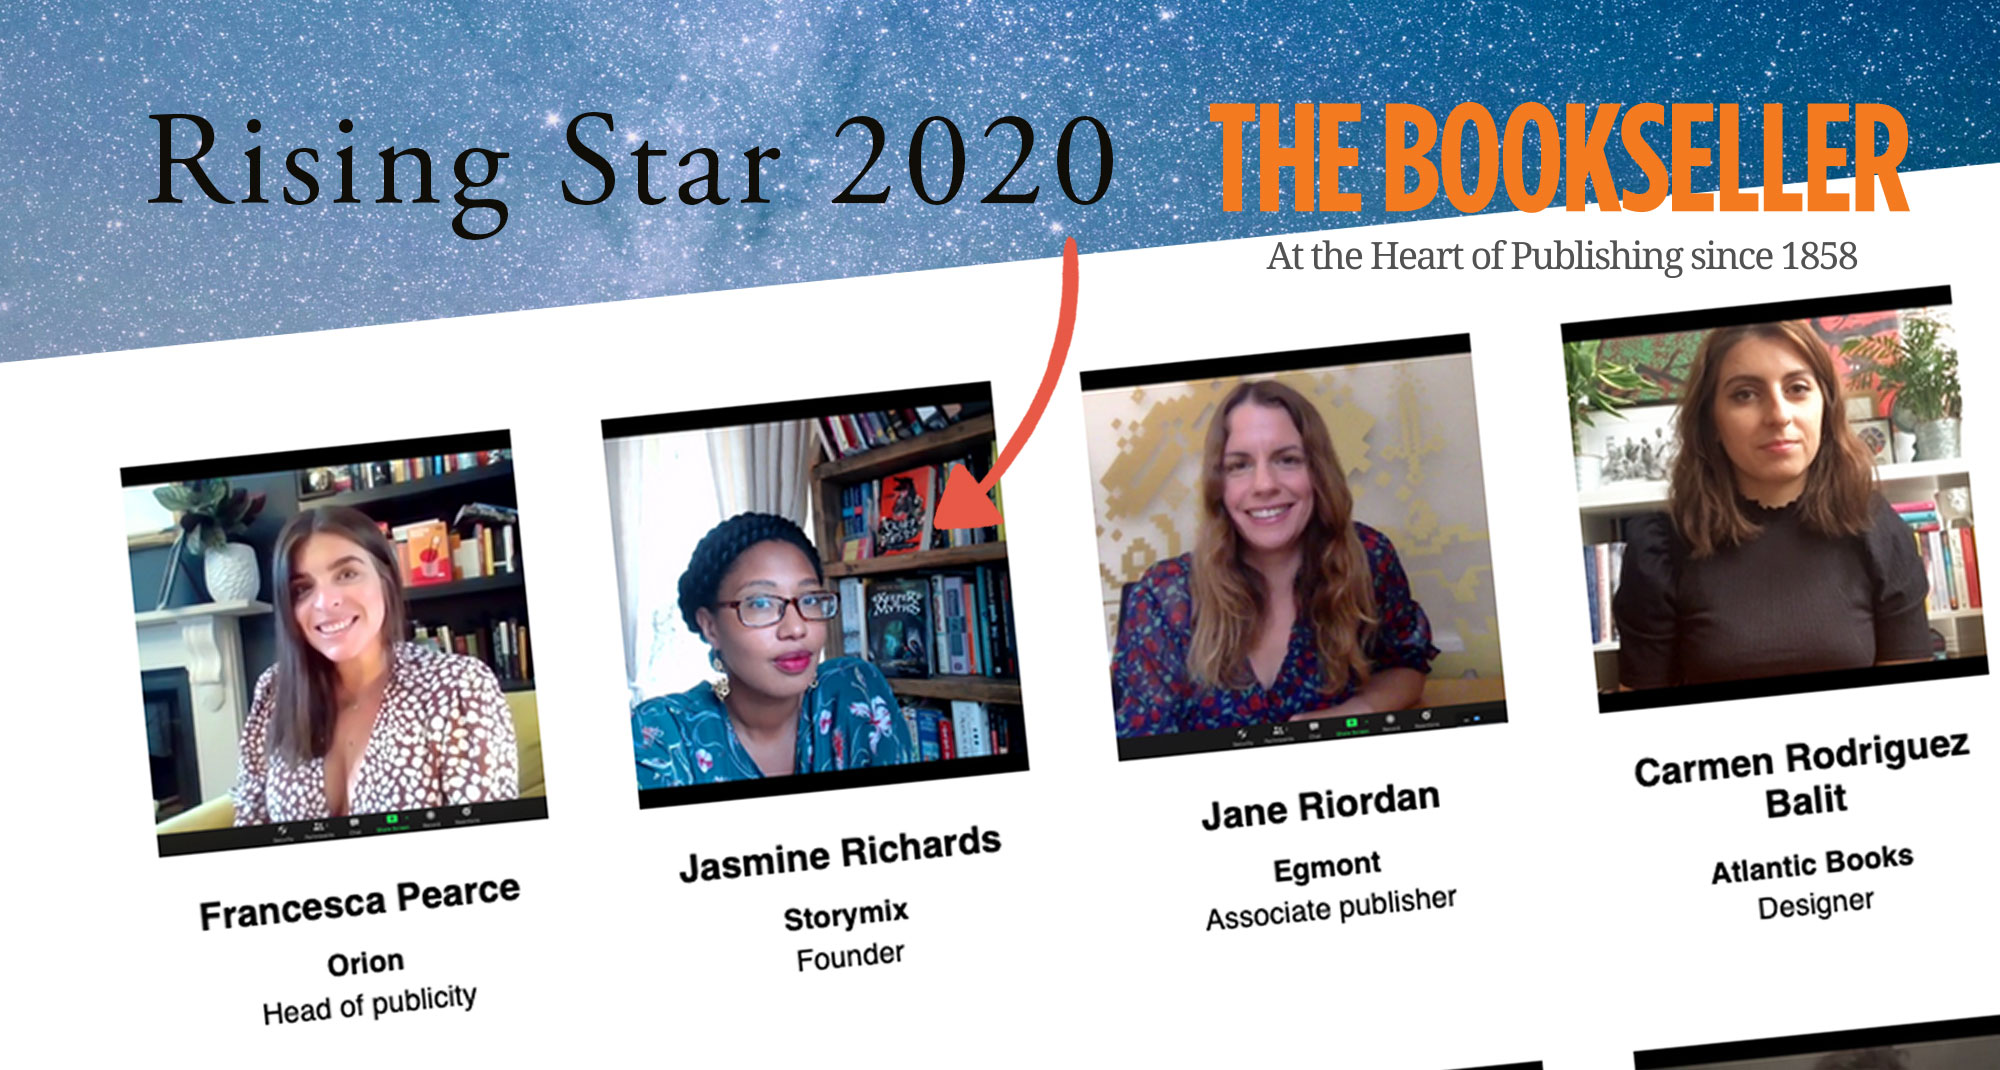 Jasmine Richards named one of The Bookseller's 2020 Rising Stars